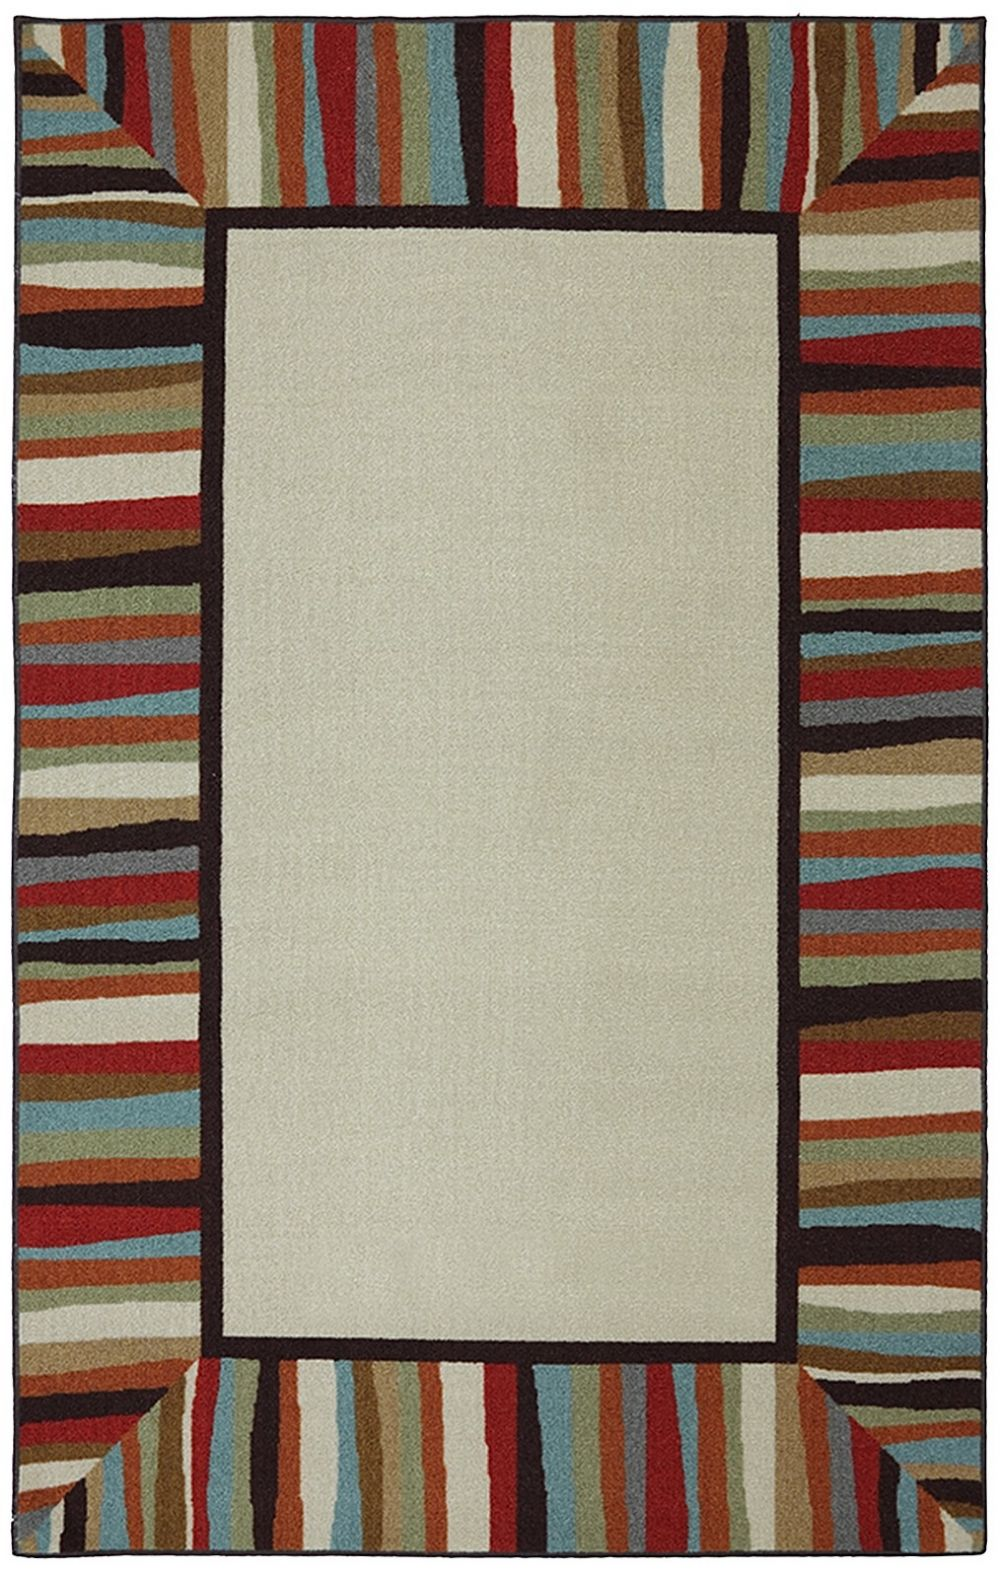 mohawk patio border contemporary area rug collection